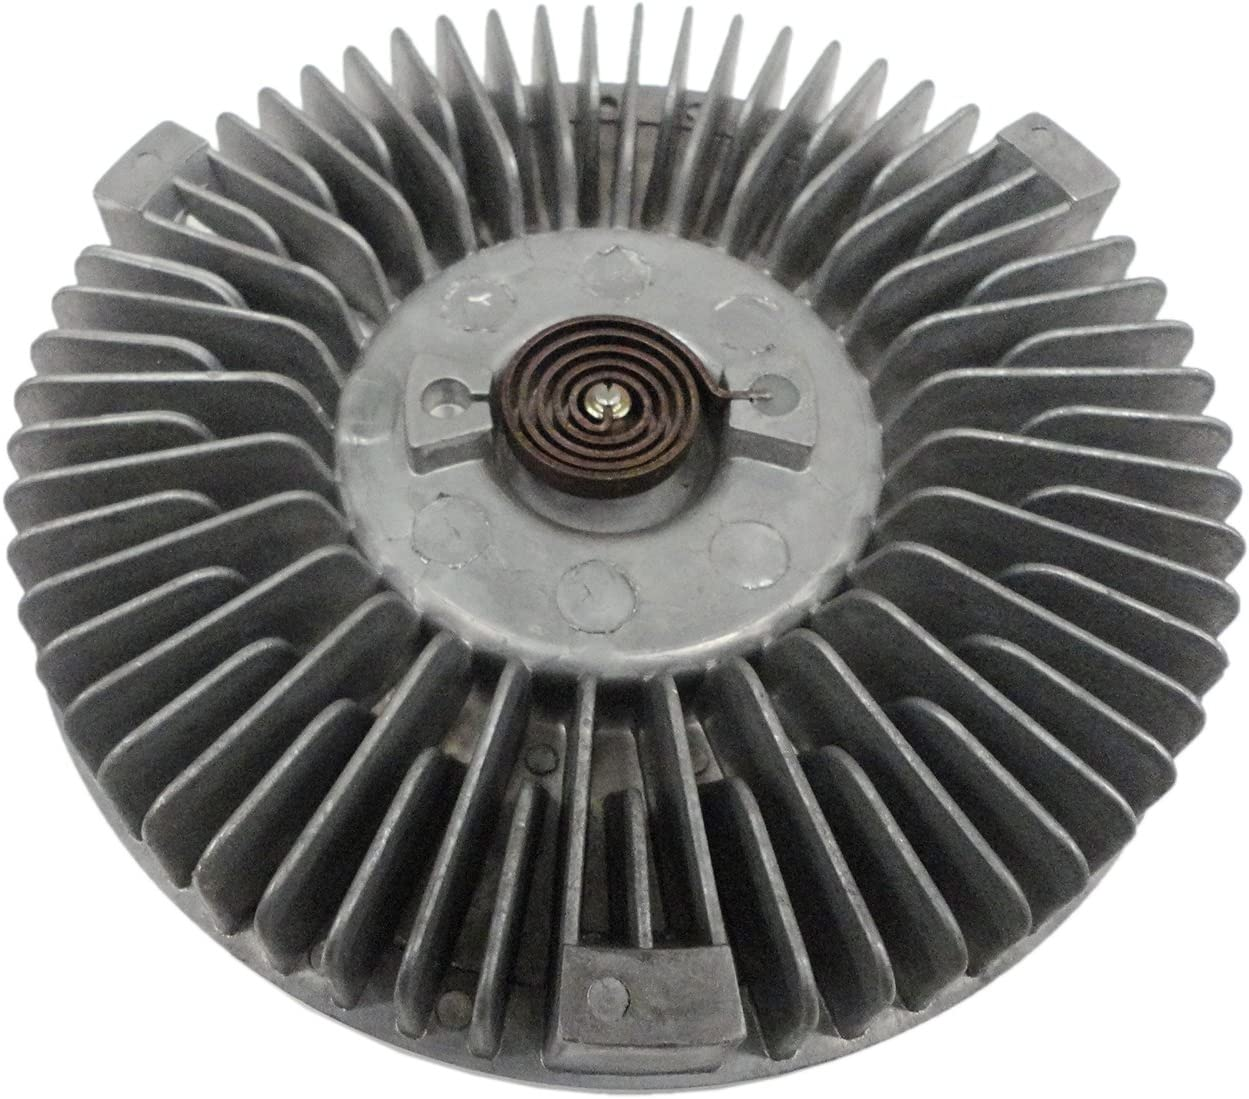 TOPAZ 2991 Cooling Max 40% OFF Fan Clutch for 95-04 Mail order cheap Land Rover Range D